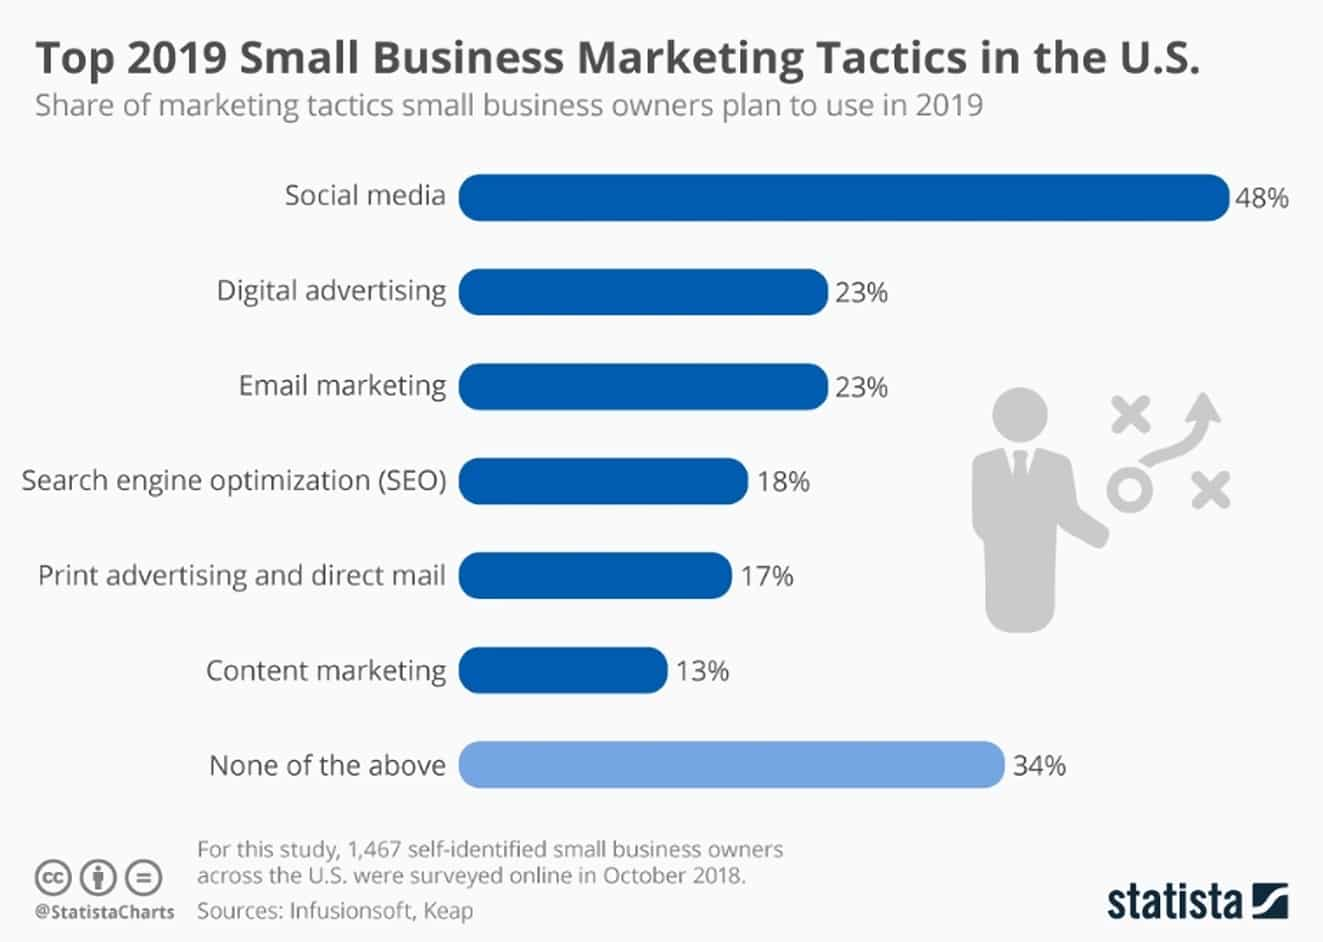 Share of marketing tactics small business owners plan to use in 2019